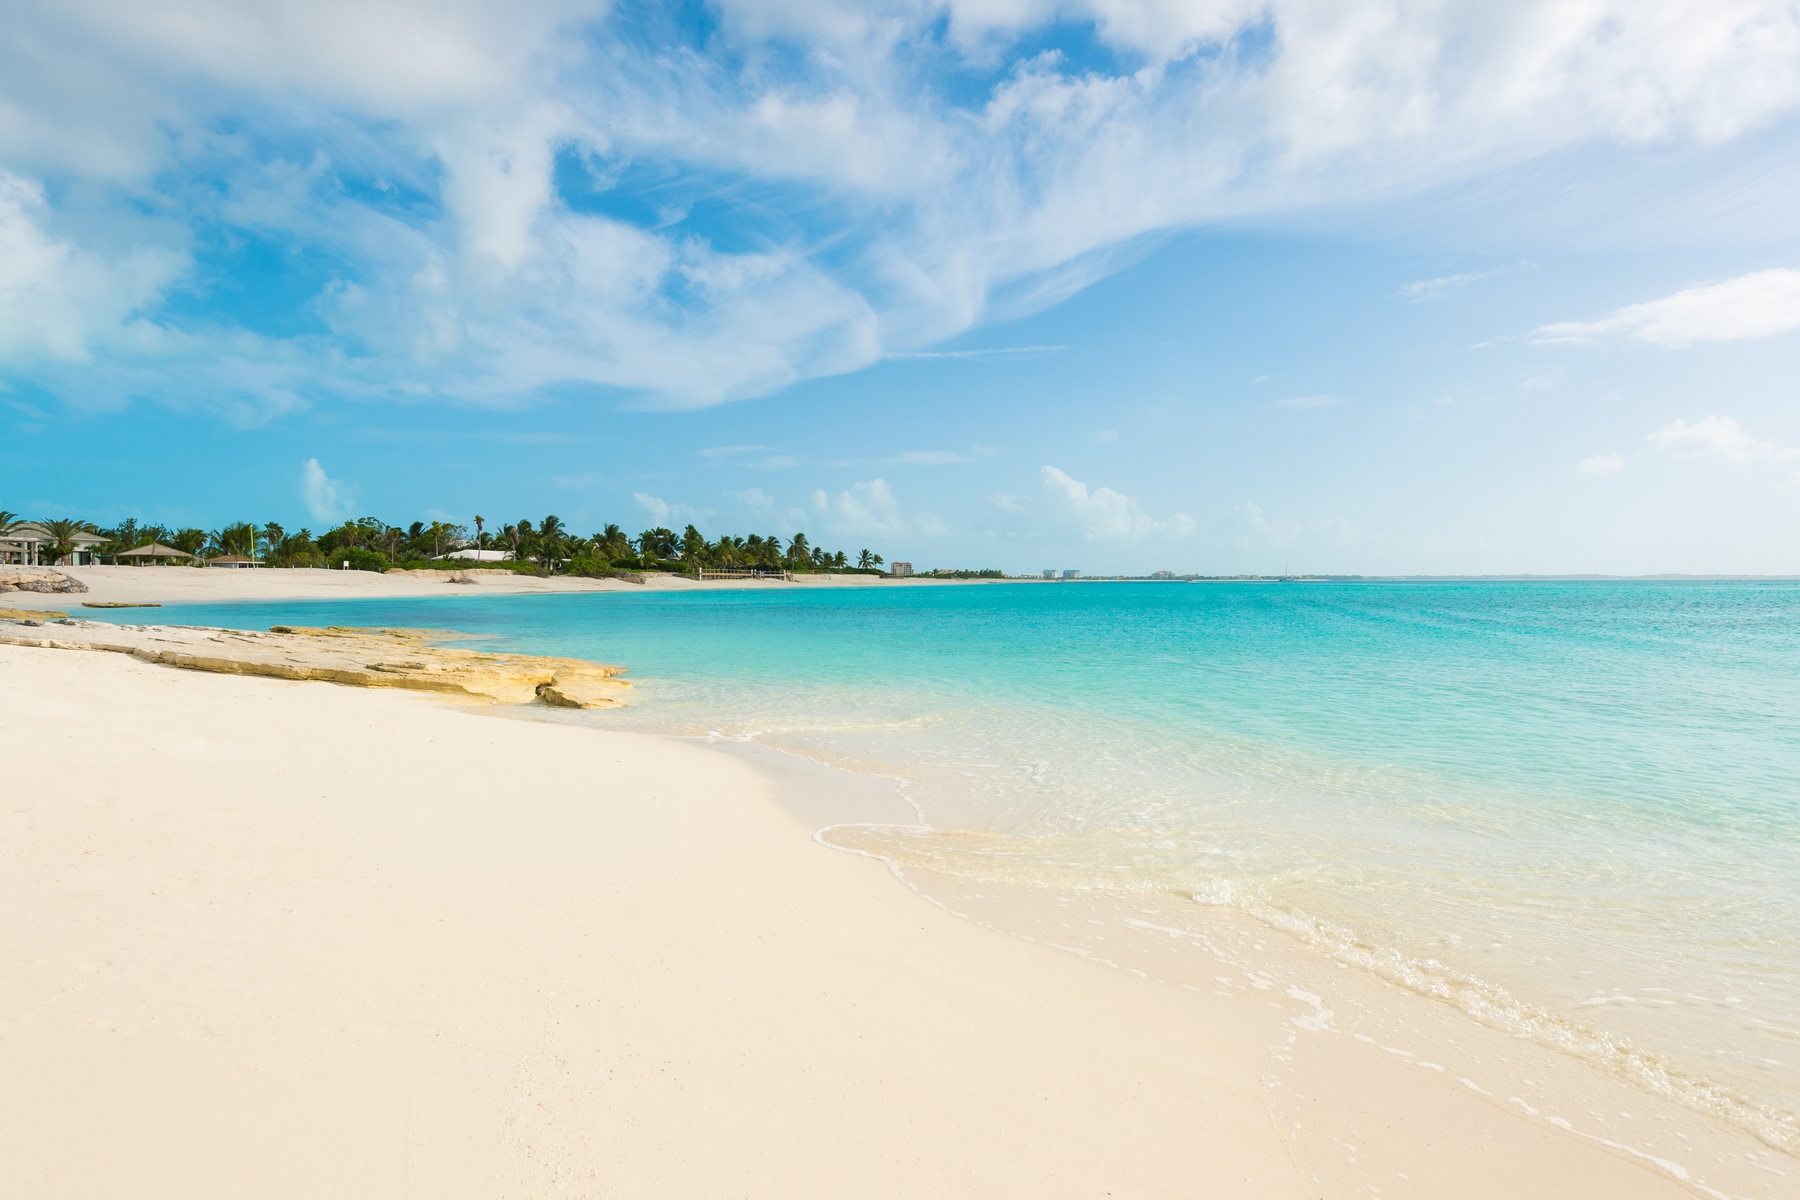 Land for Sale at Tranquility Lane Beachfront Grace Bay, Providenciales TCI Turks And Caicos Islands